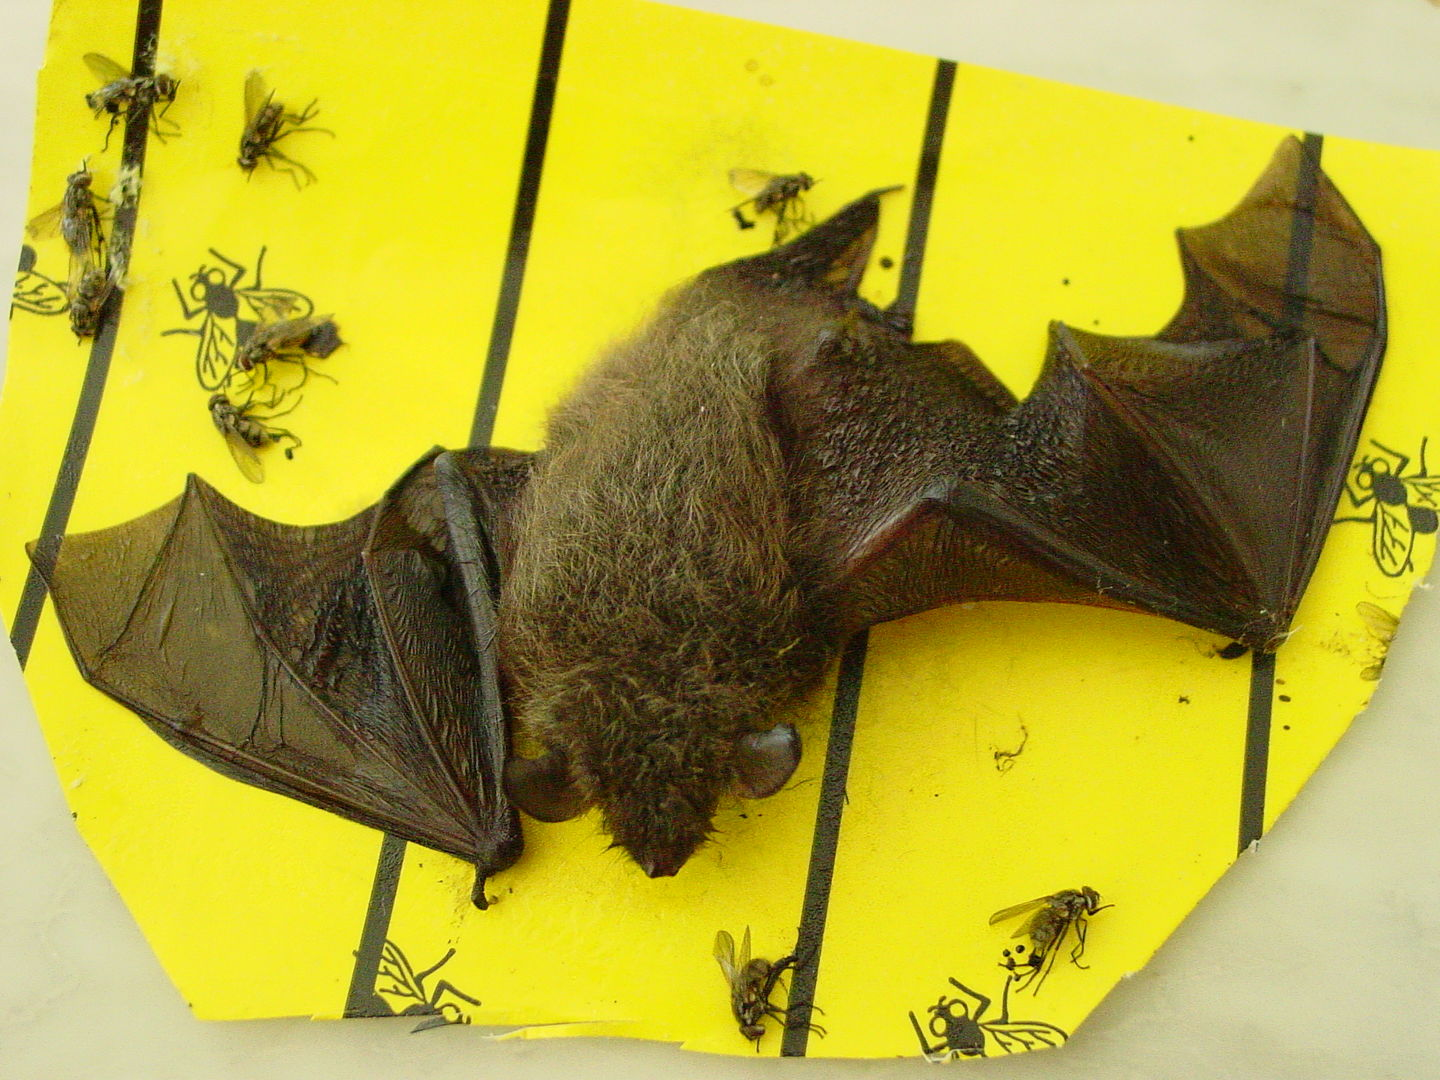 Das Foto zeigt eine Klebefalle mit einer festgeklebten Fledermaus. Das Tier konnte gerettet werden. // The photo shows a glue trap with a stuck-on bat. The animal was saved.